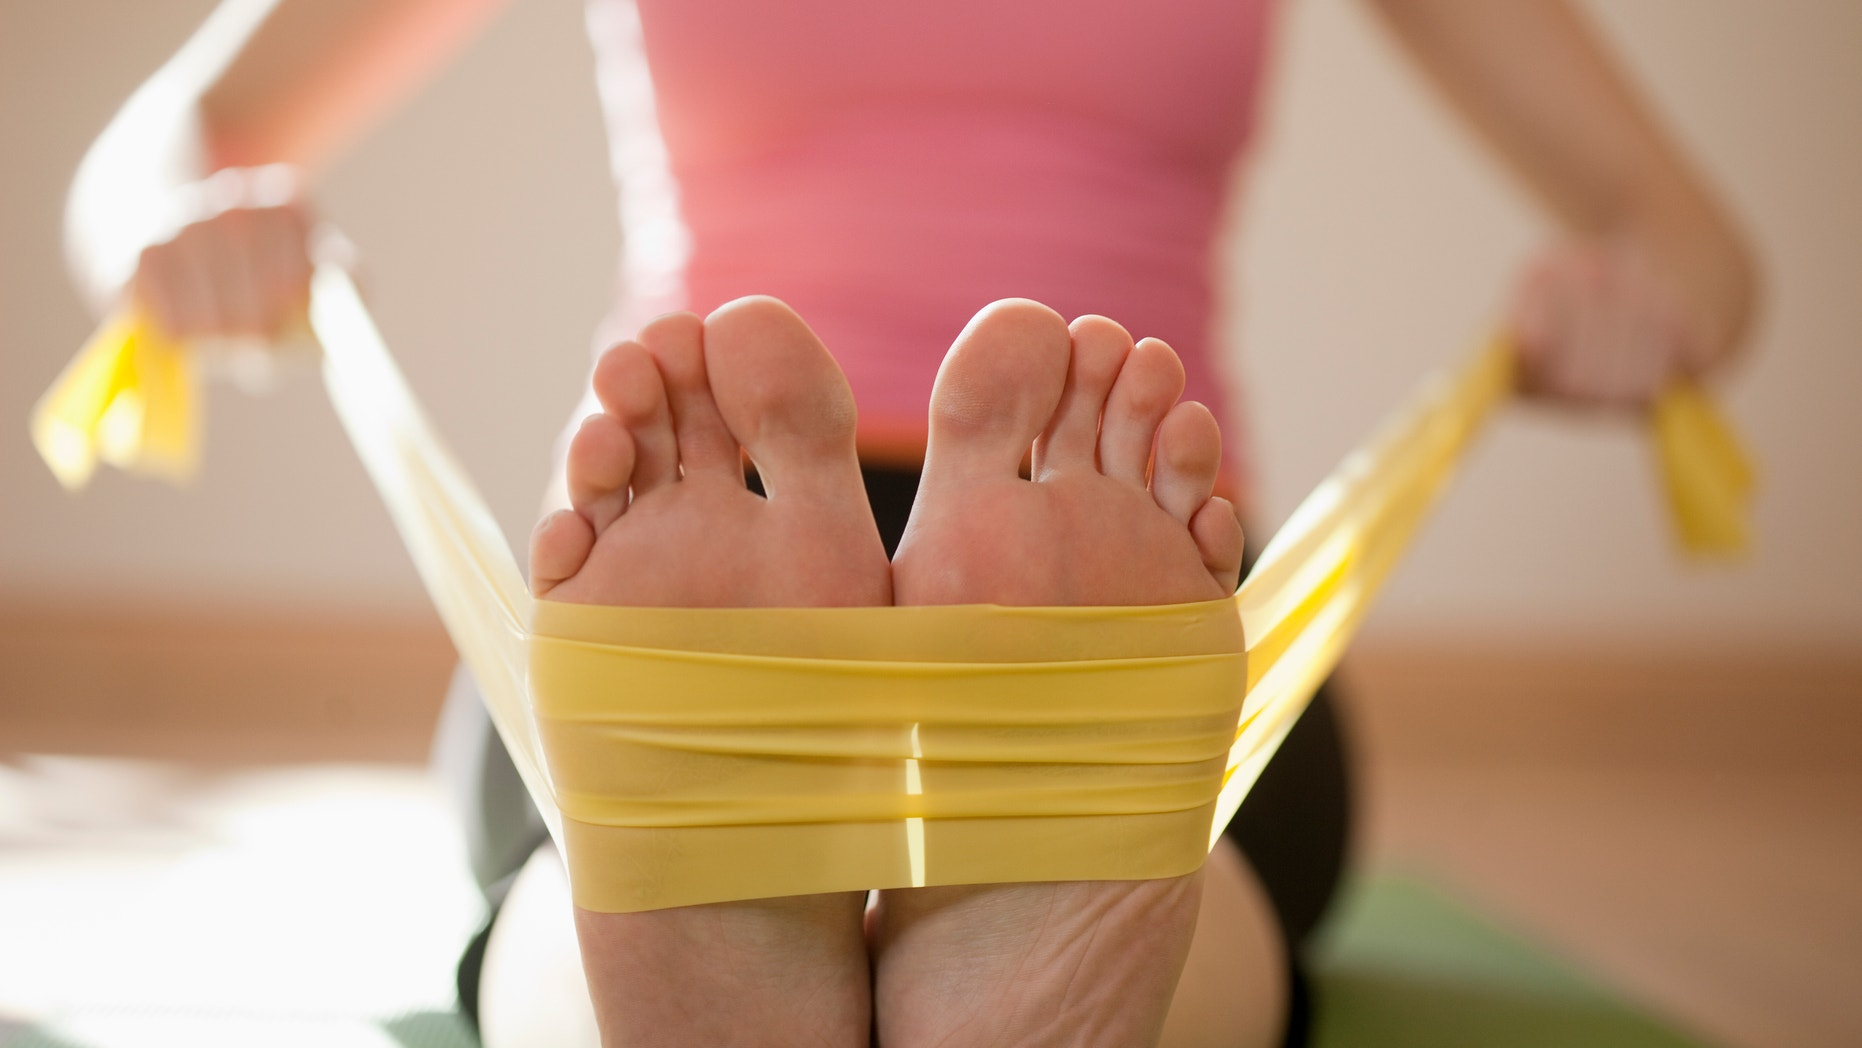 Woman exercises with resistance bands around her feet. Horizontal shot.